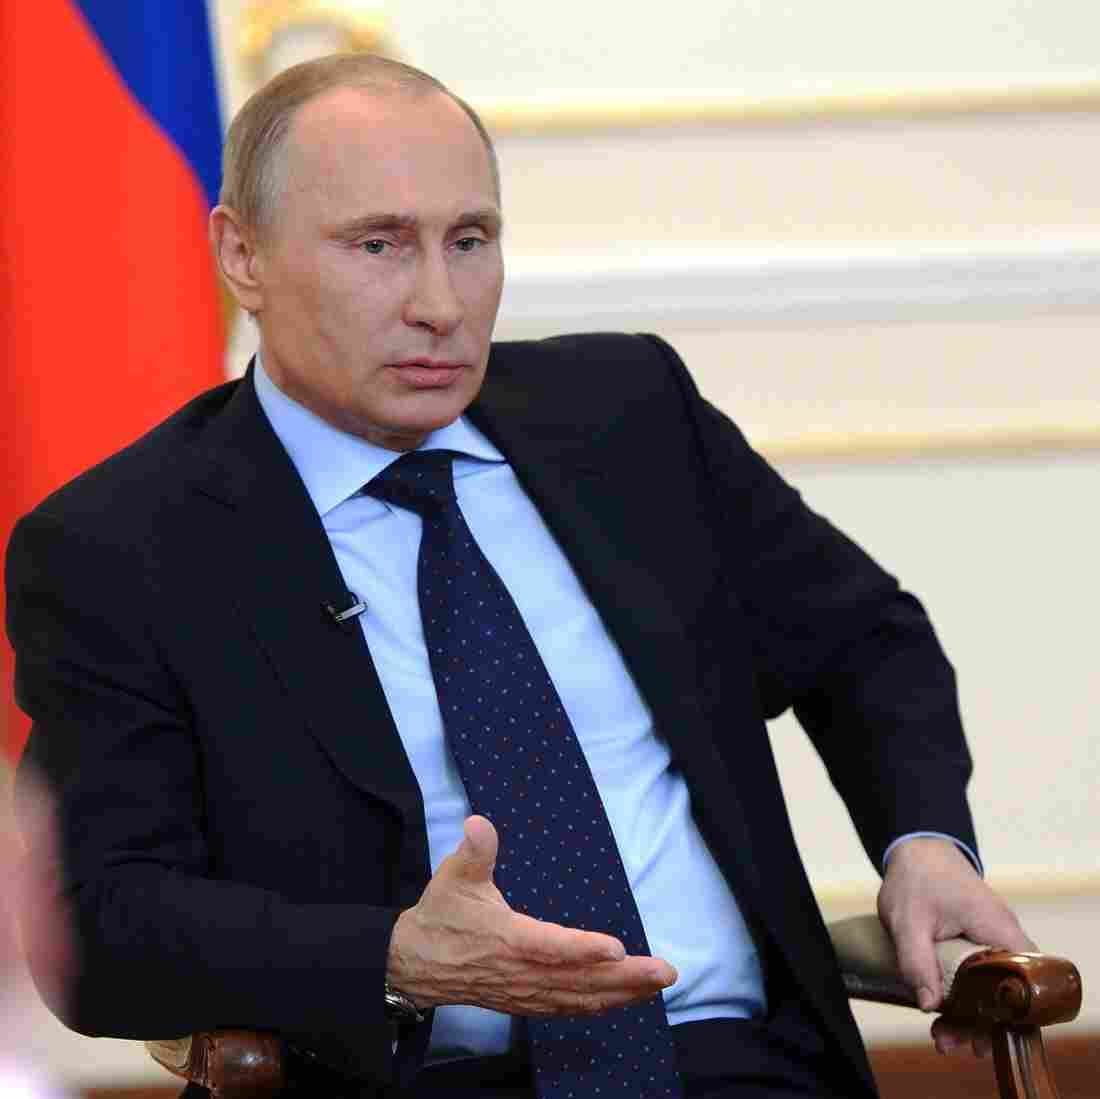 Putin Says Those Aren't Russian Forces In Crimea